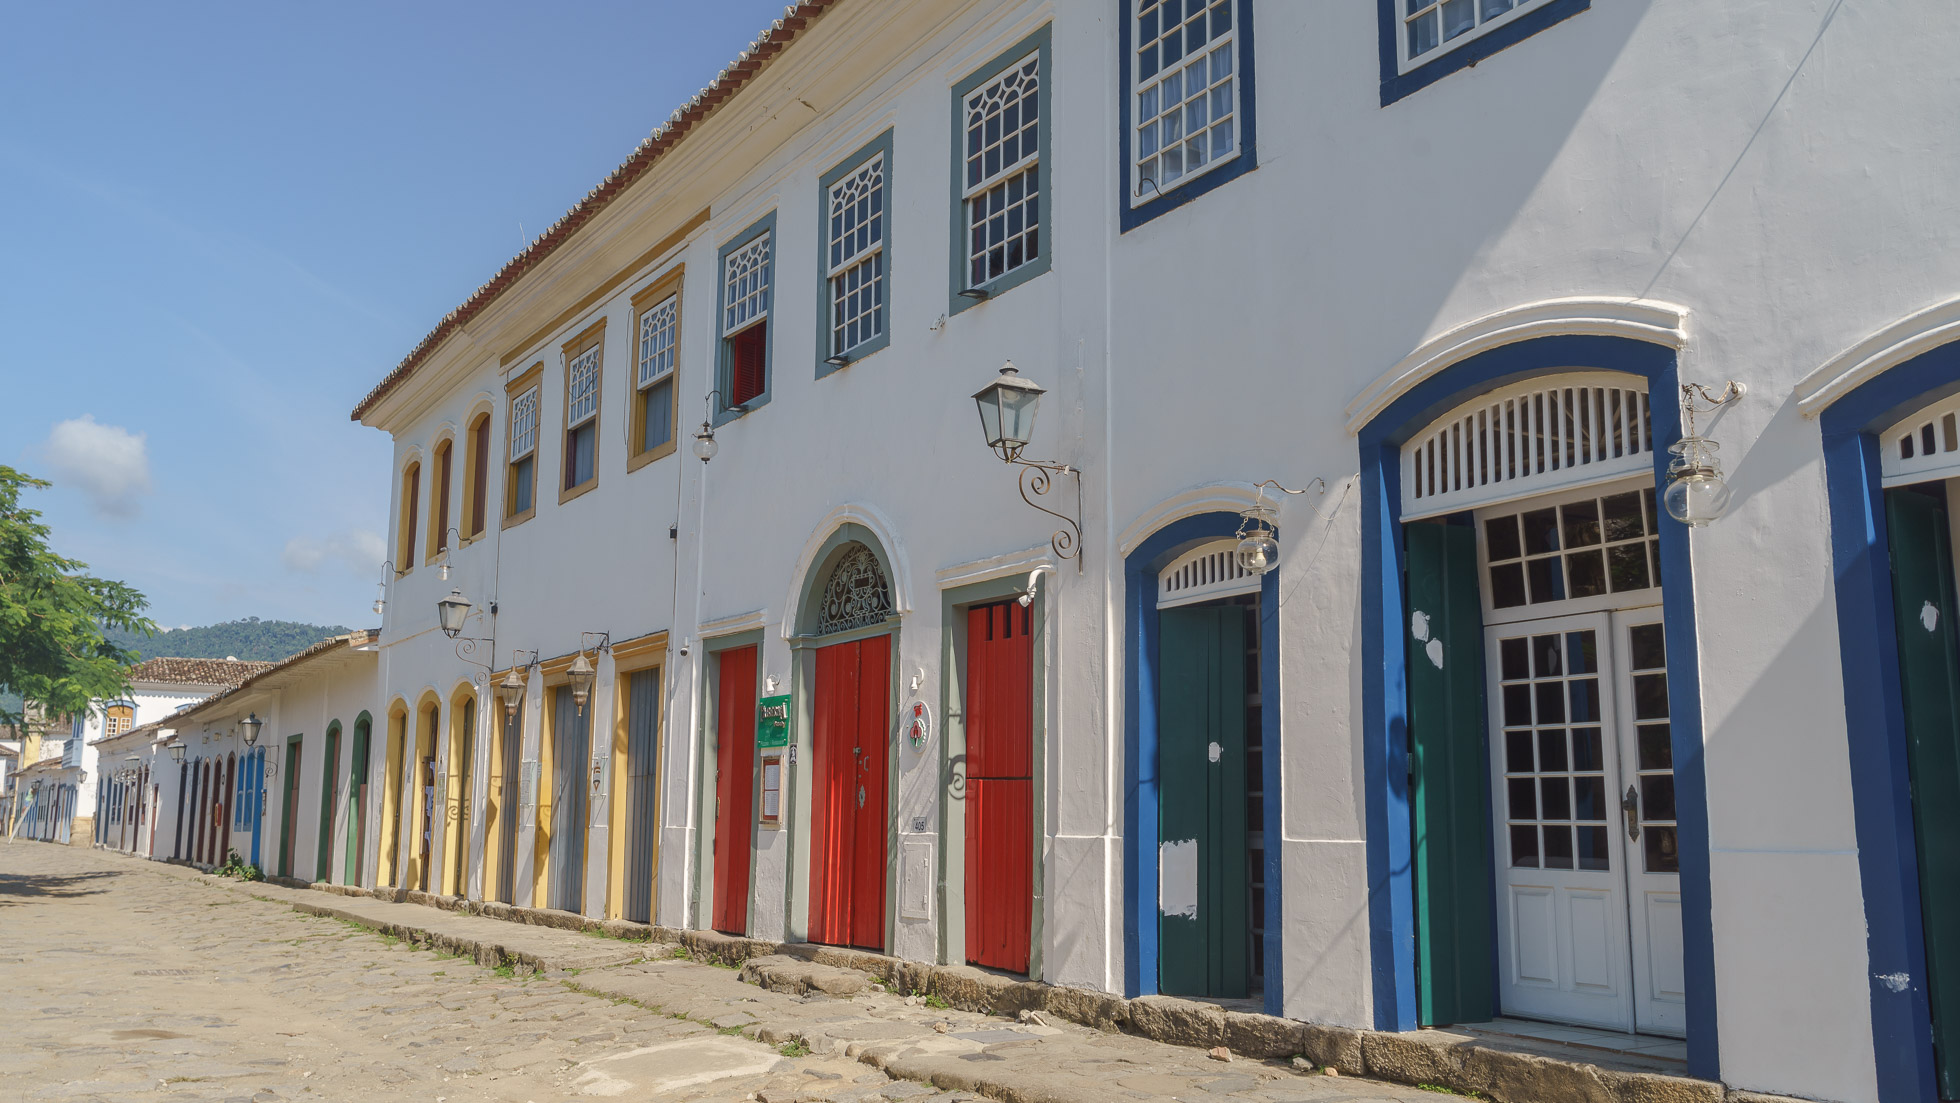 Lesvoyageuses-paraty-bresil-guide-voyage-169